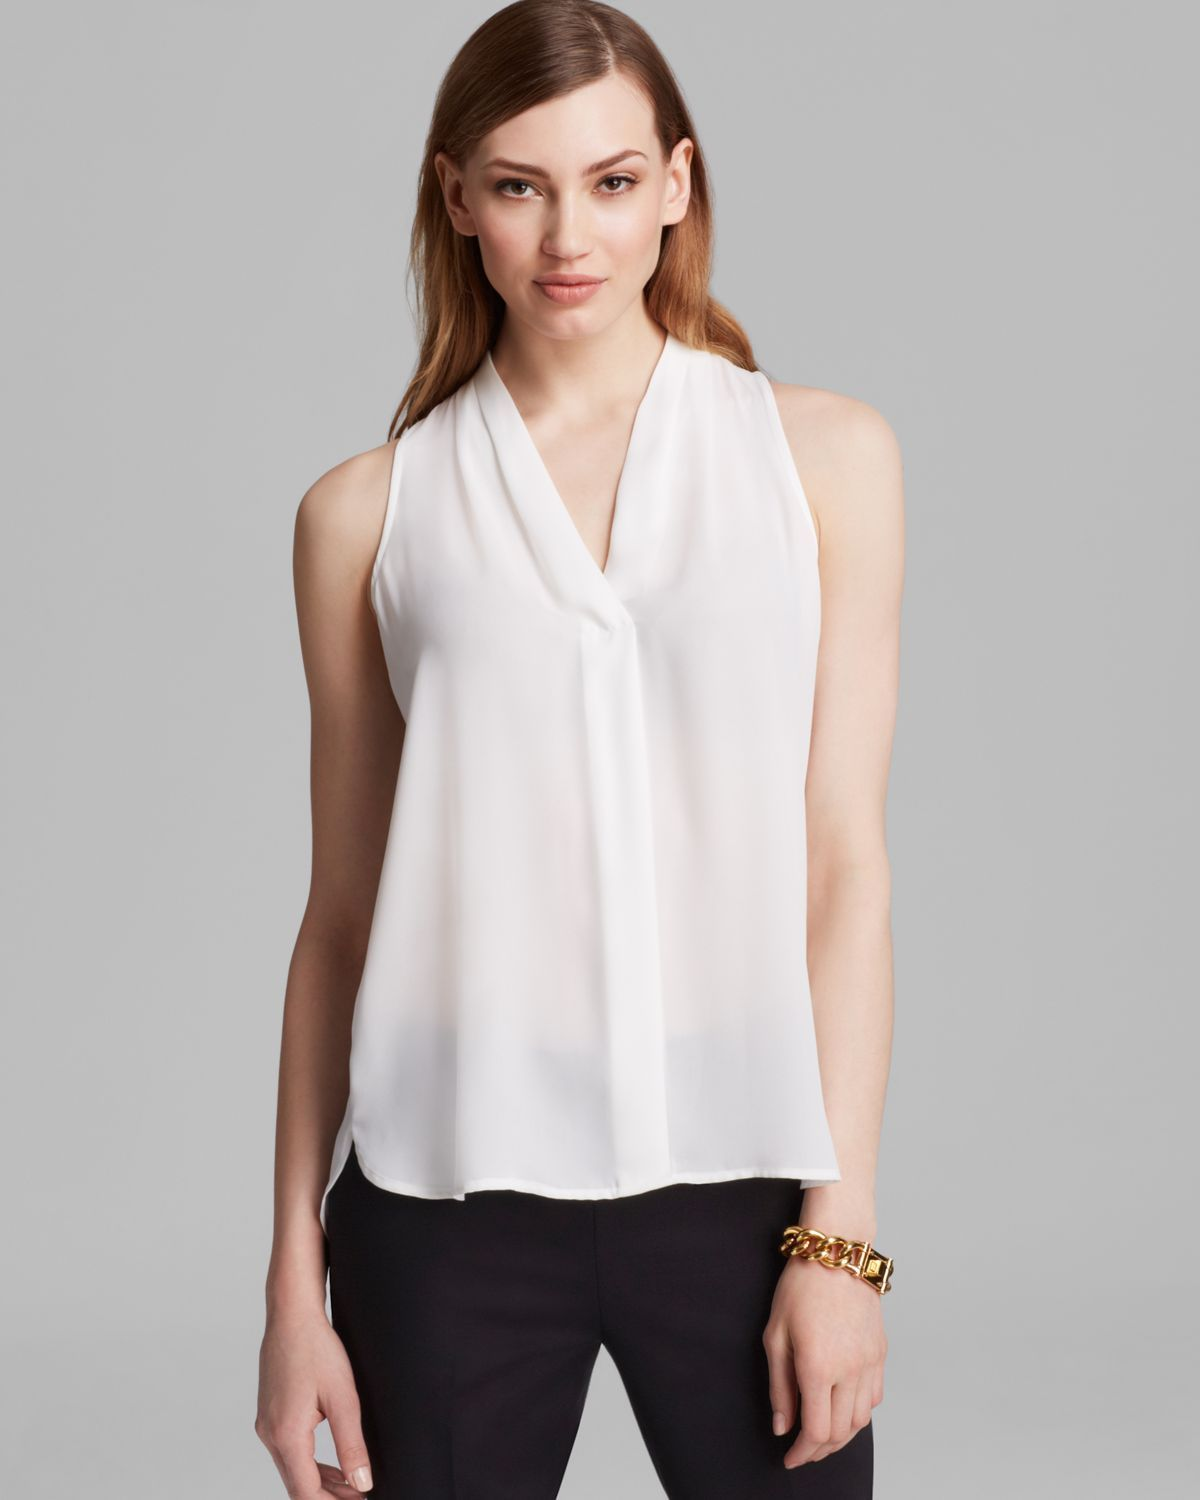 Women's White Sleeveless V Neck Blouse | Vince camuto